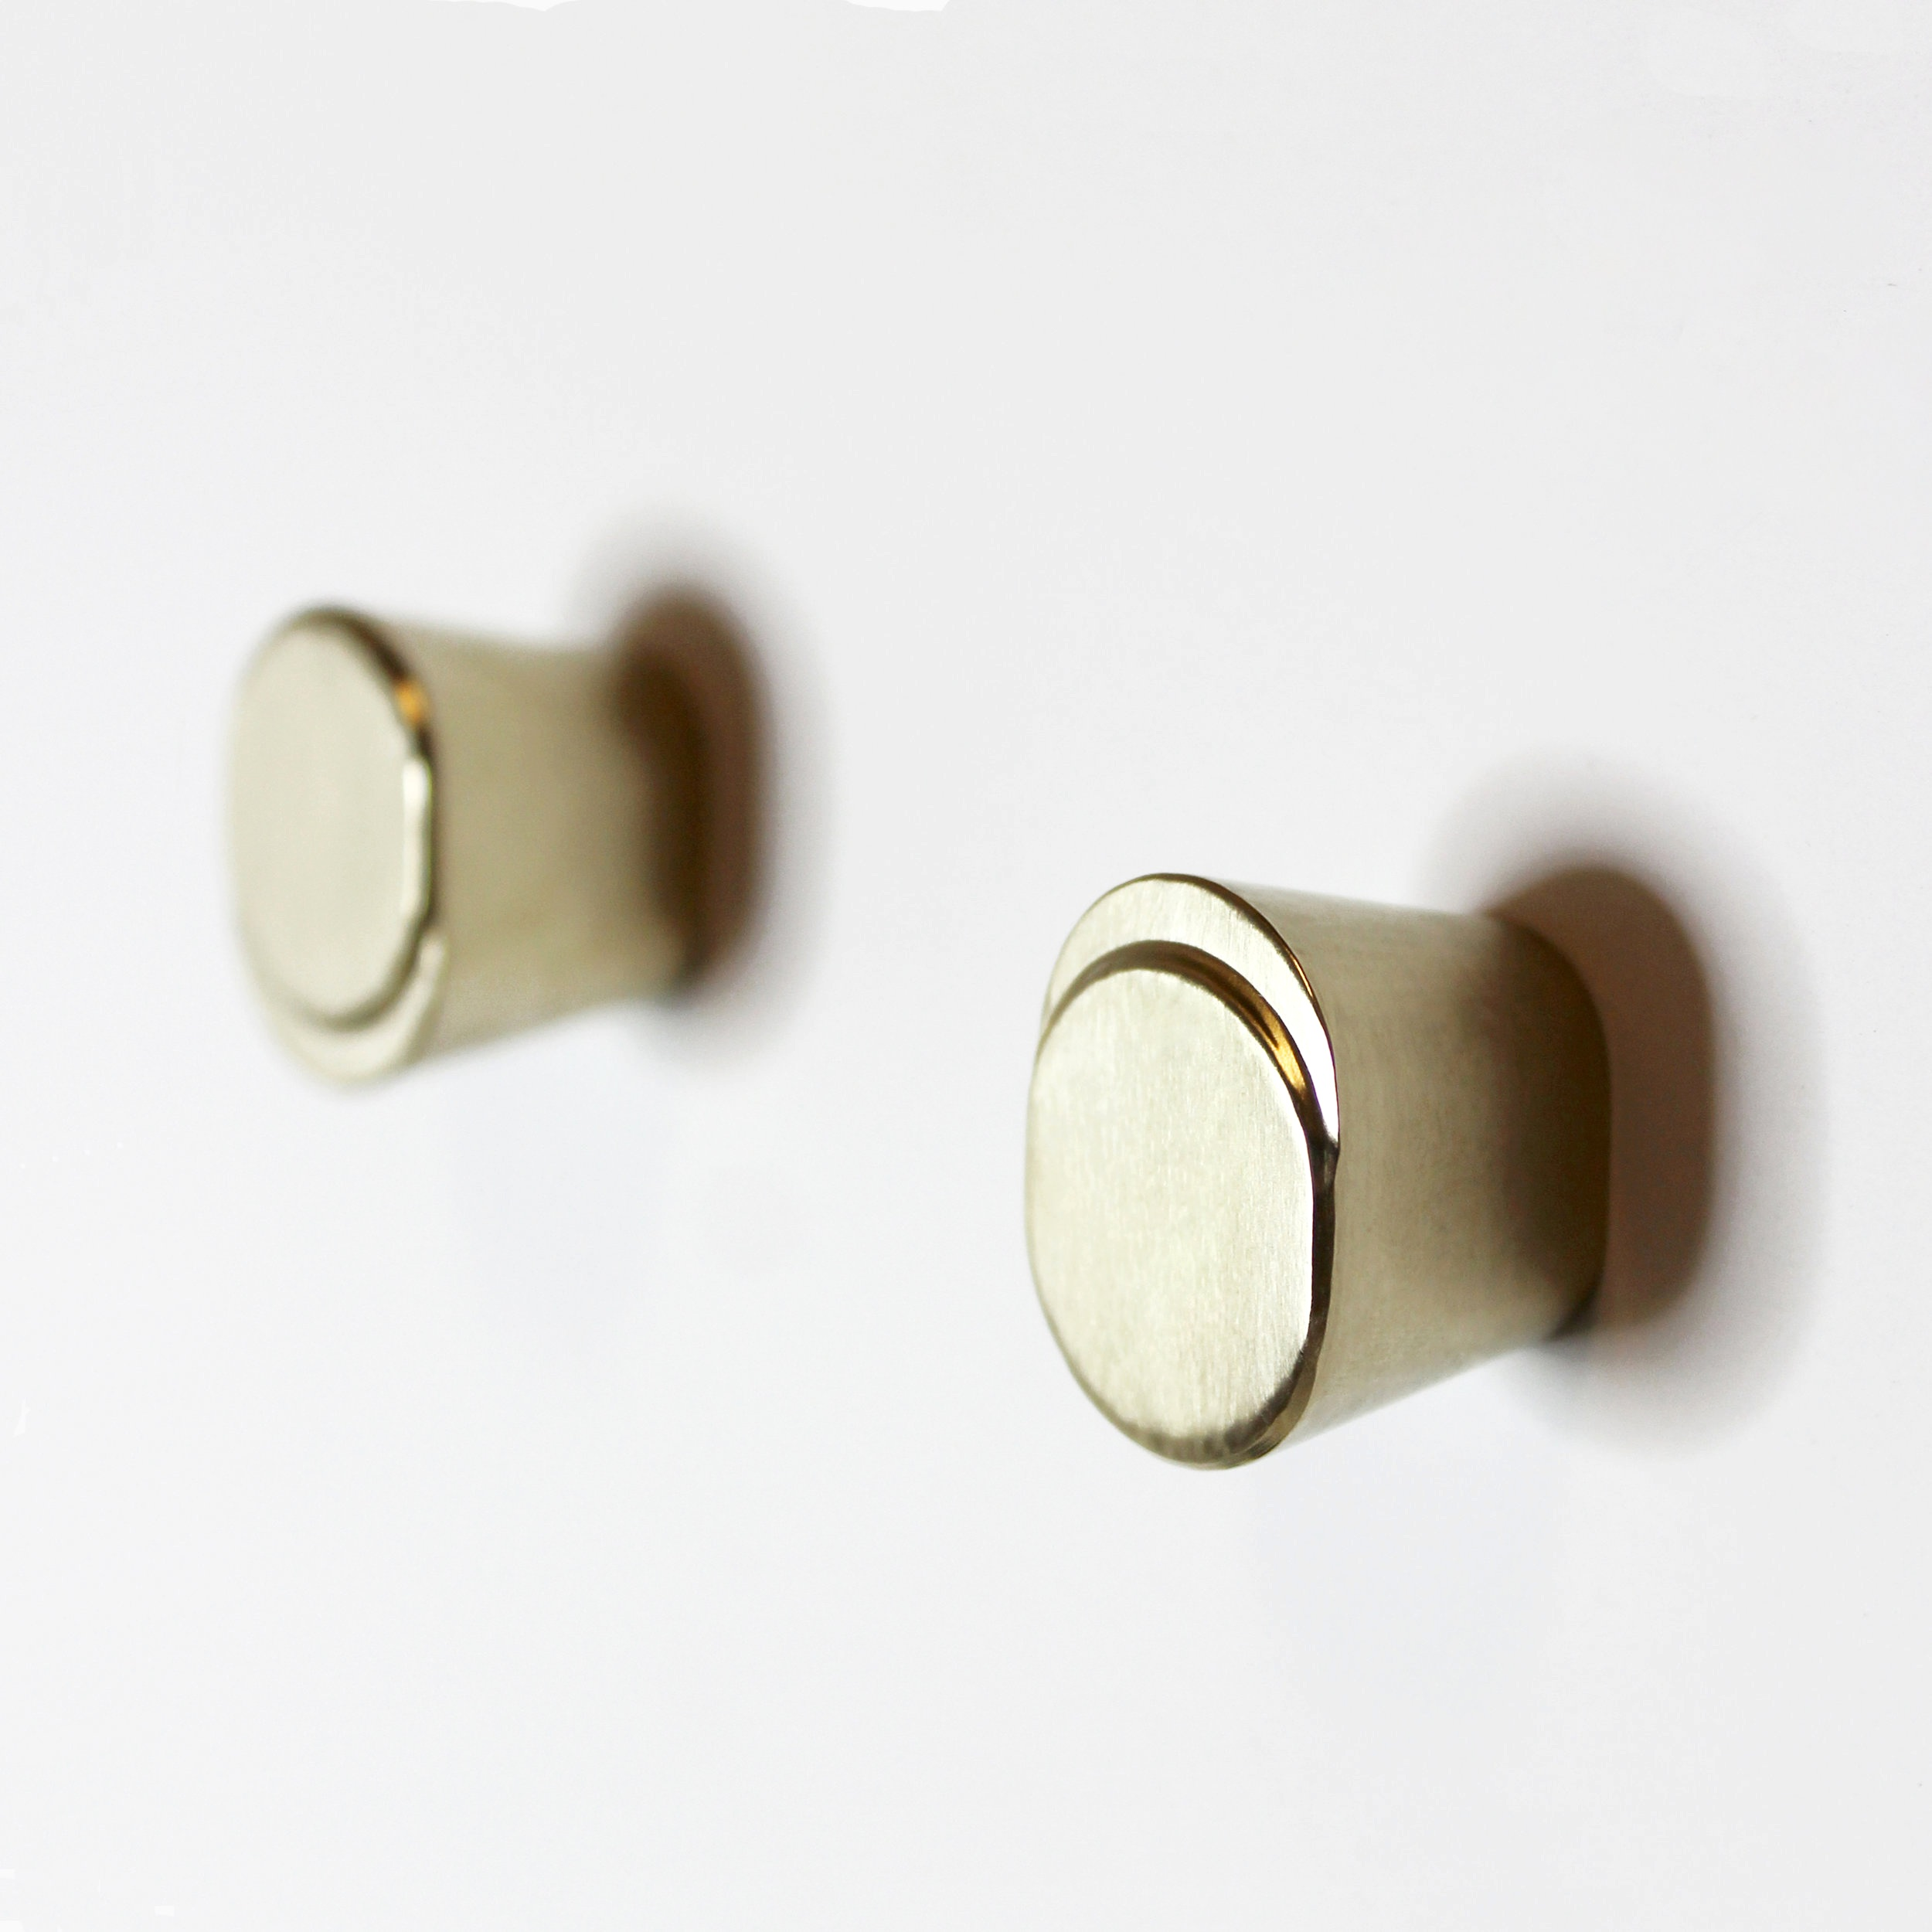 Eclipse+Knob+-+Brass+Lustre+Finish+2.jpg